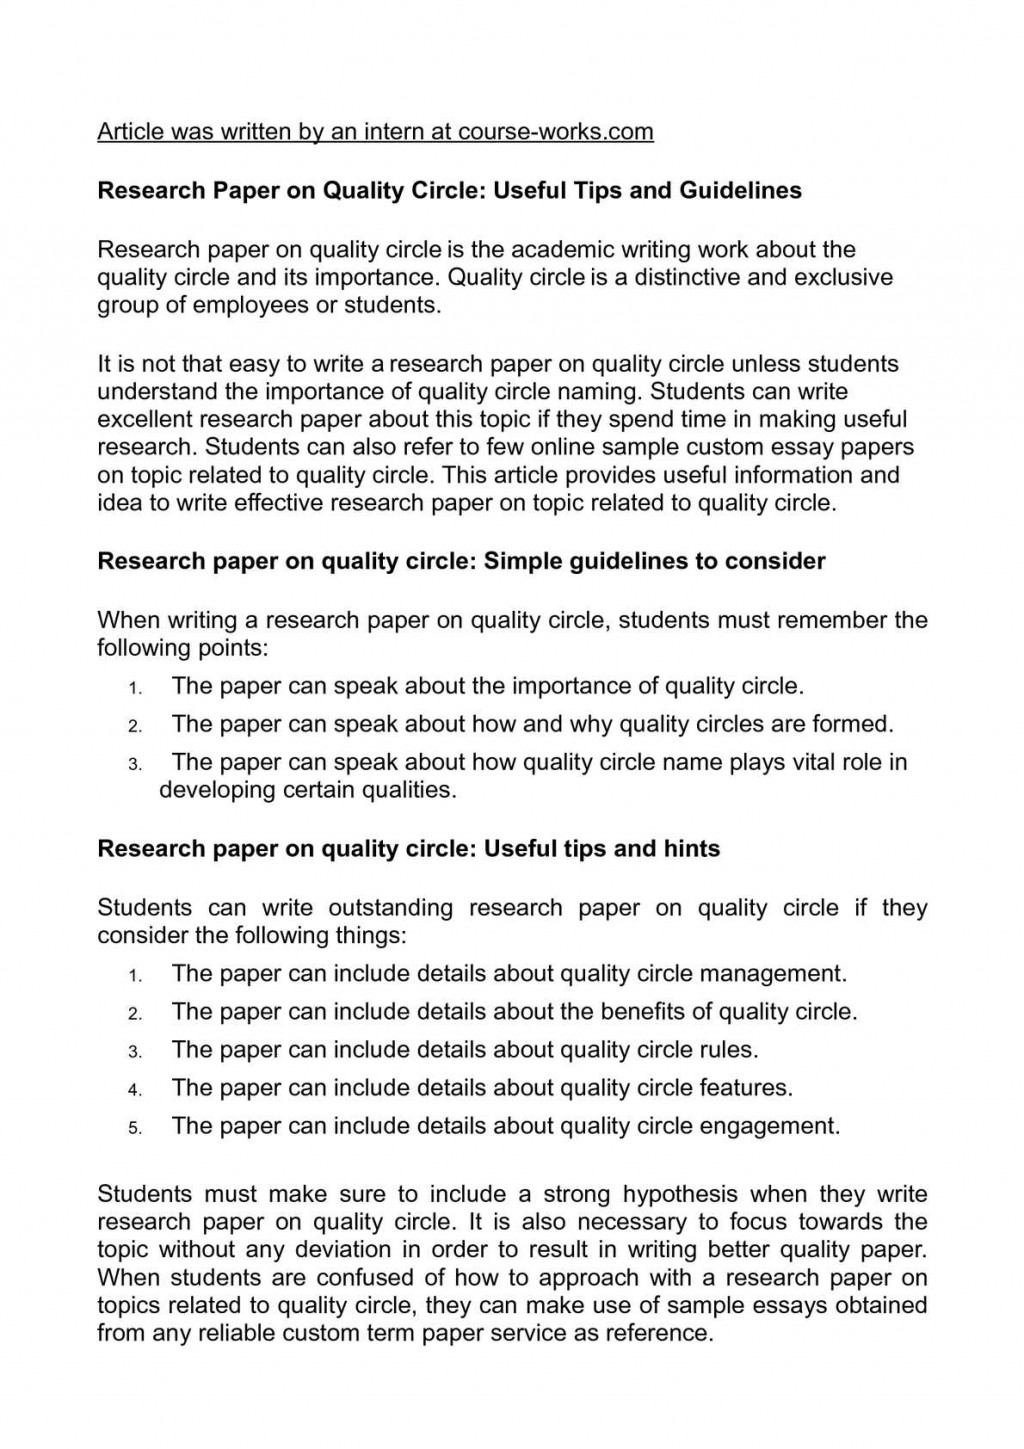 015 Importance Of Term Paper Writing Research Custom Breathtaking Writer Service Writers Large